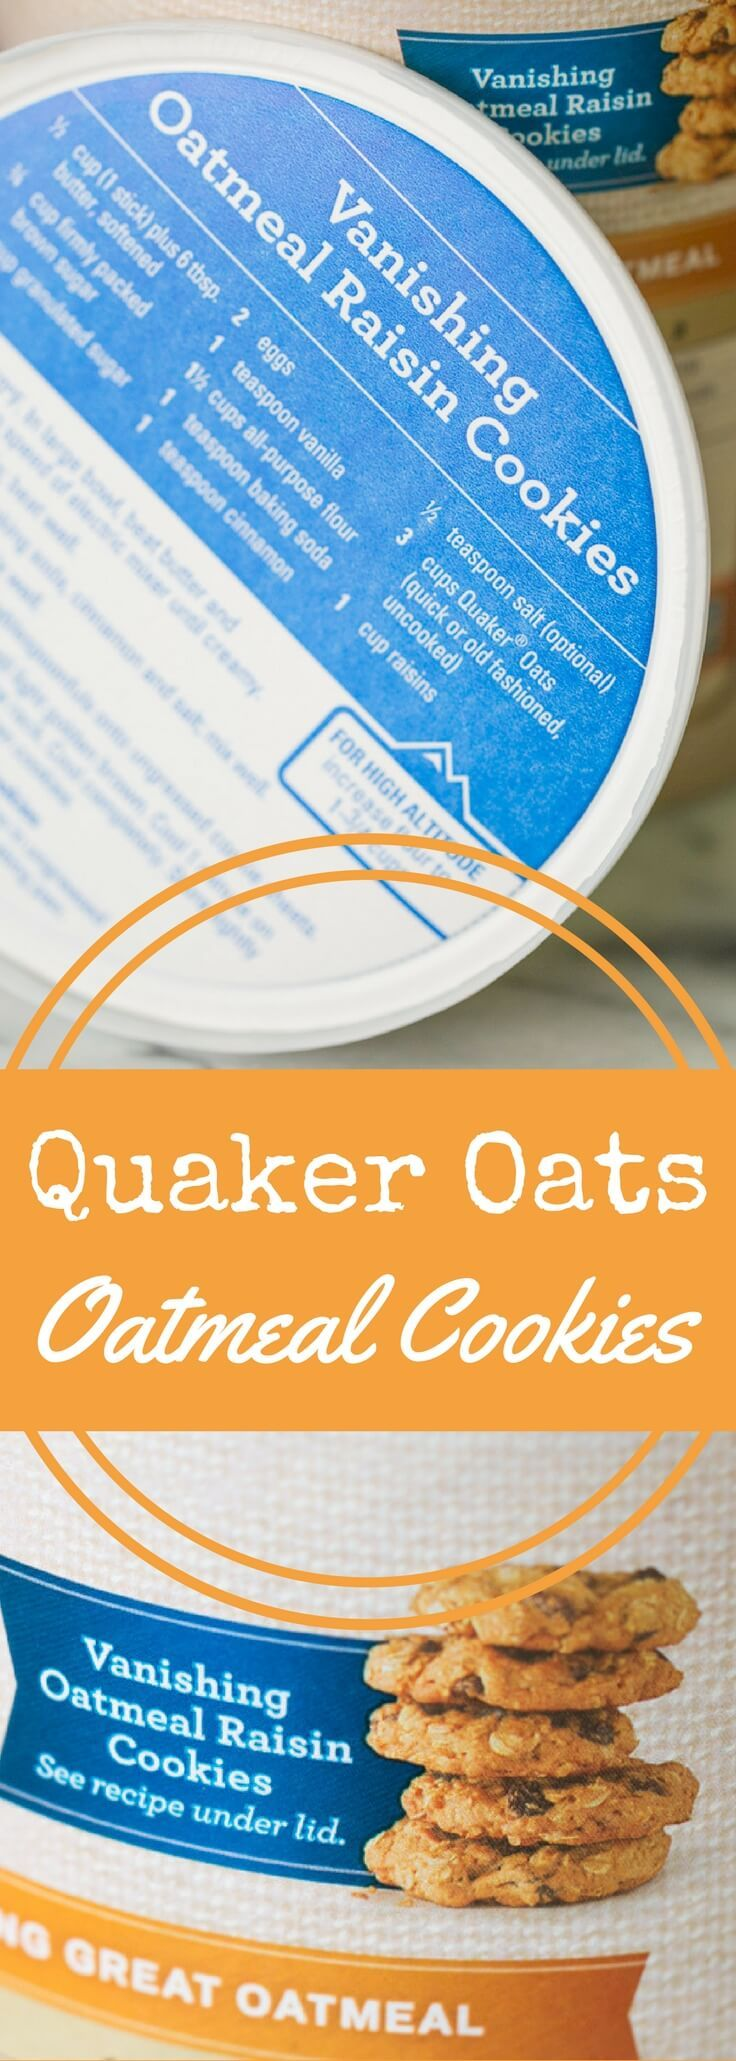 The classic Quaker oatmeal cookies recipe from the old-fashioned oats box or canister, plus tips for making these cookies perfect. via @recipeforperfec